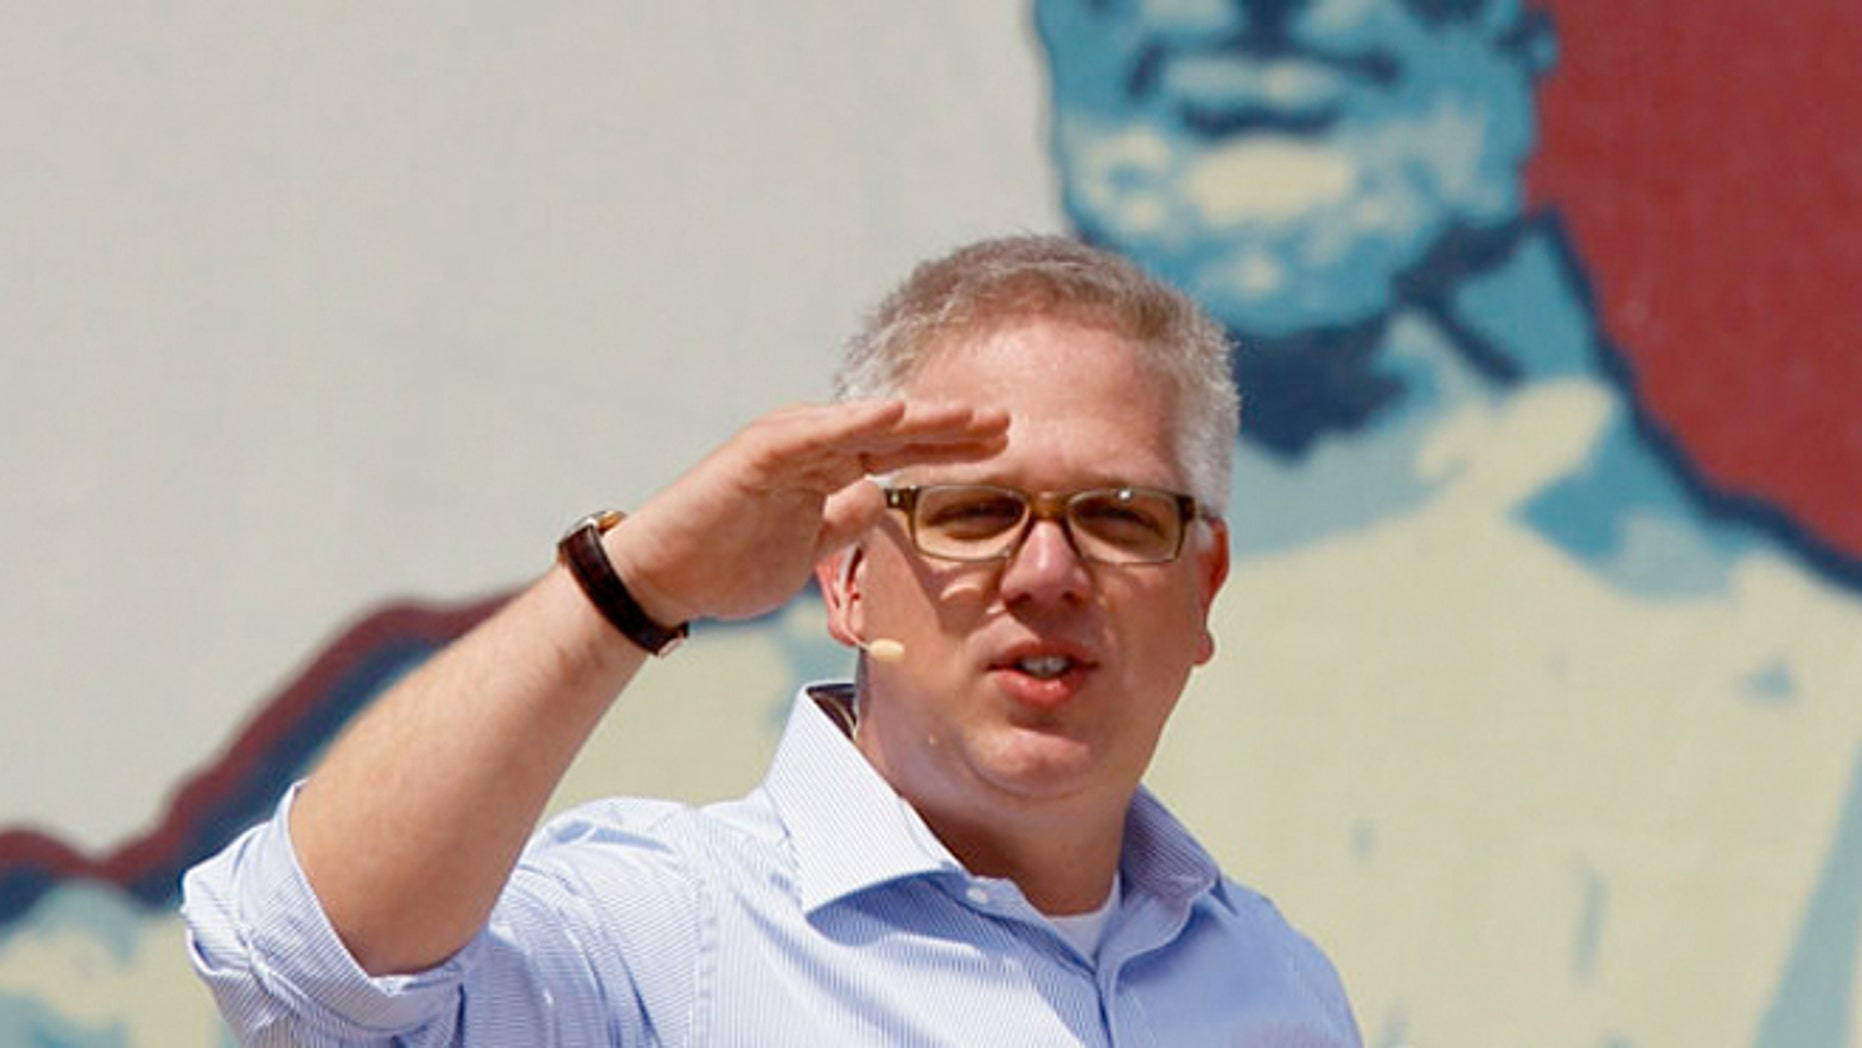 Glenn Beck says that American Airlines singled him out for mistreatment on a recent flight because of his political views.